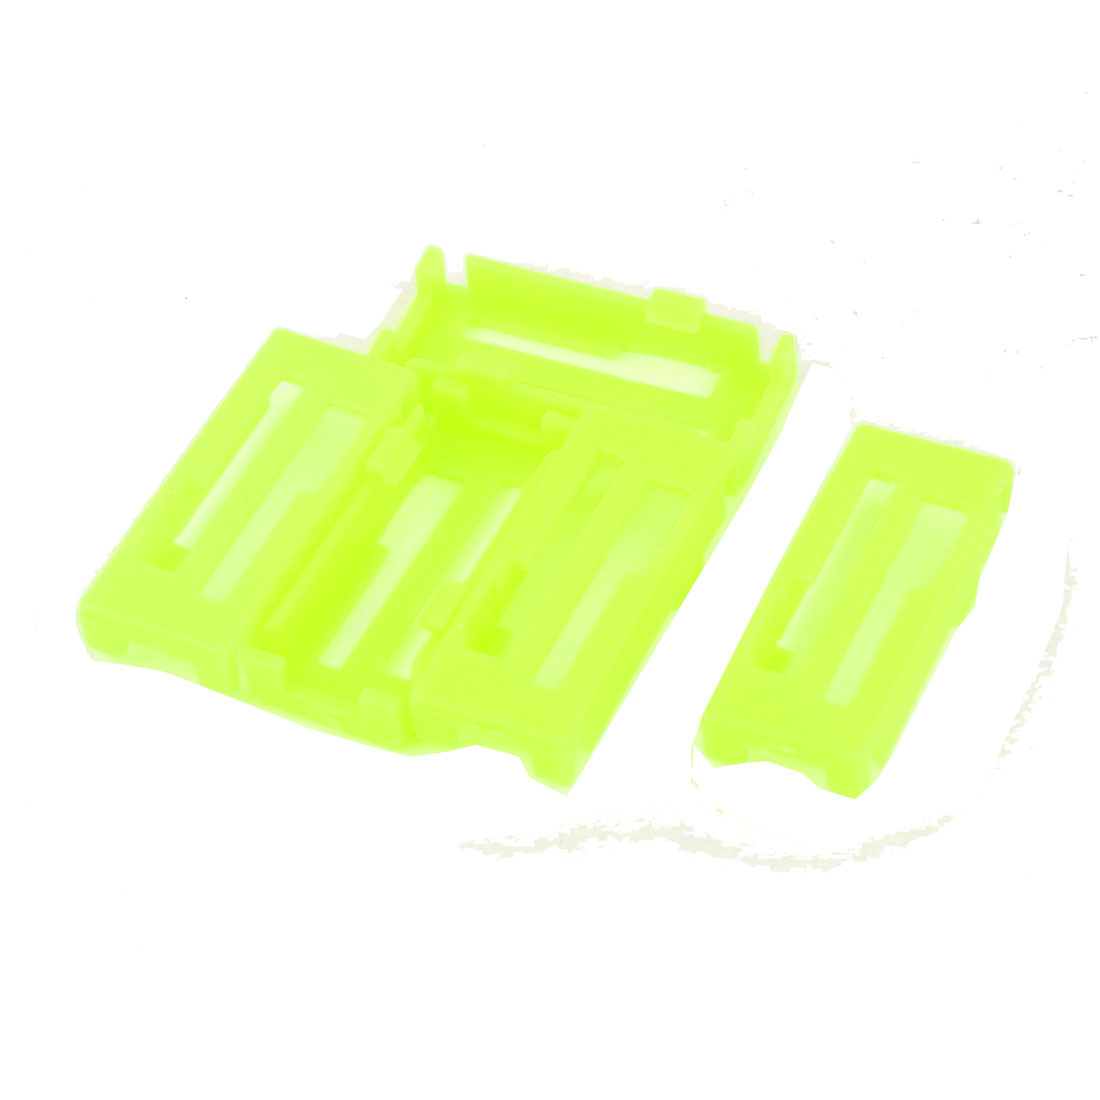 5pcs Servo Extension Cable Buckle Cable Clip Fastenner Jointer Yellow